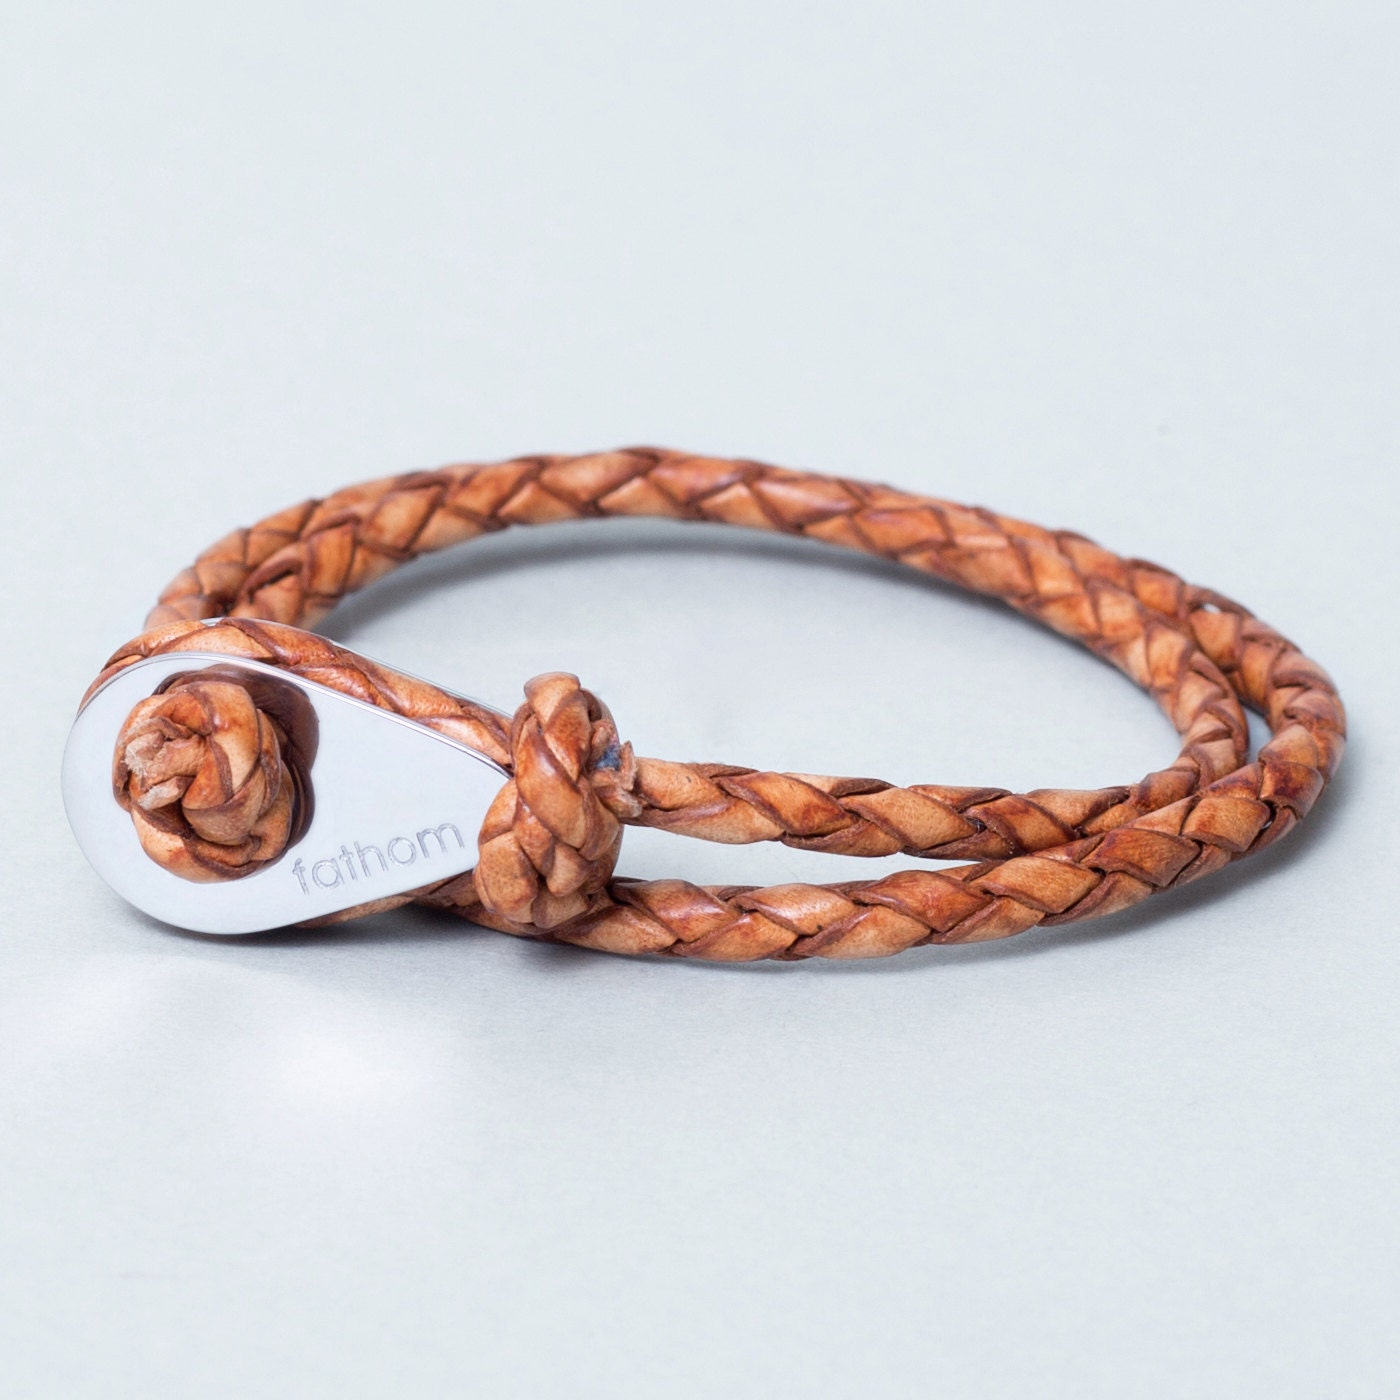 BRACELET Men Leather Bracelets For Women Leather Bracelet